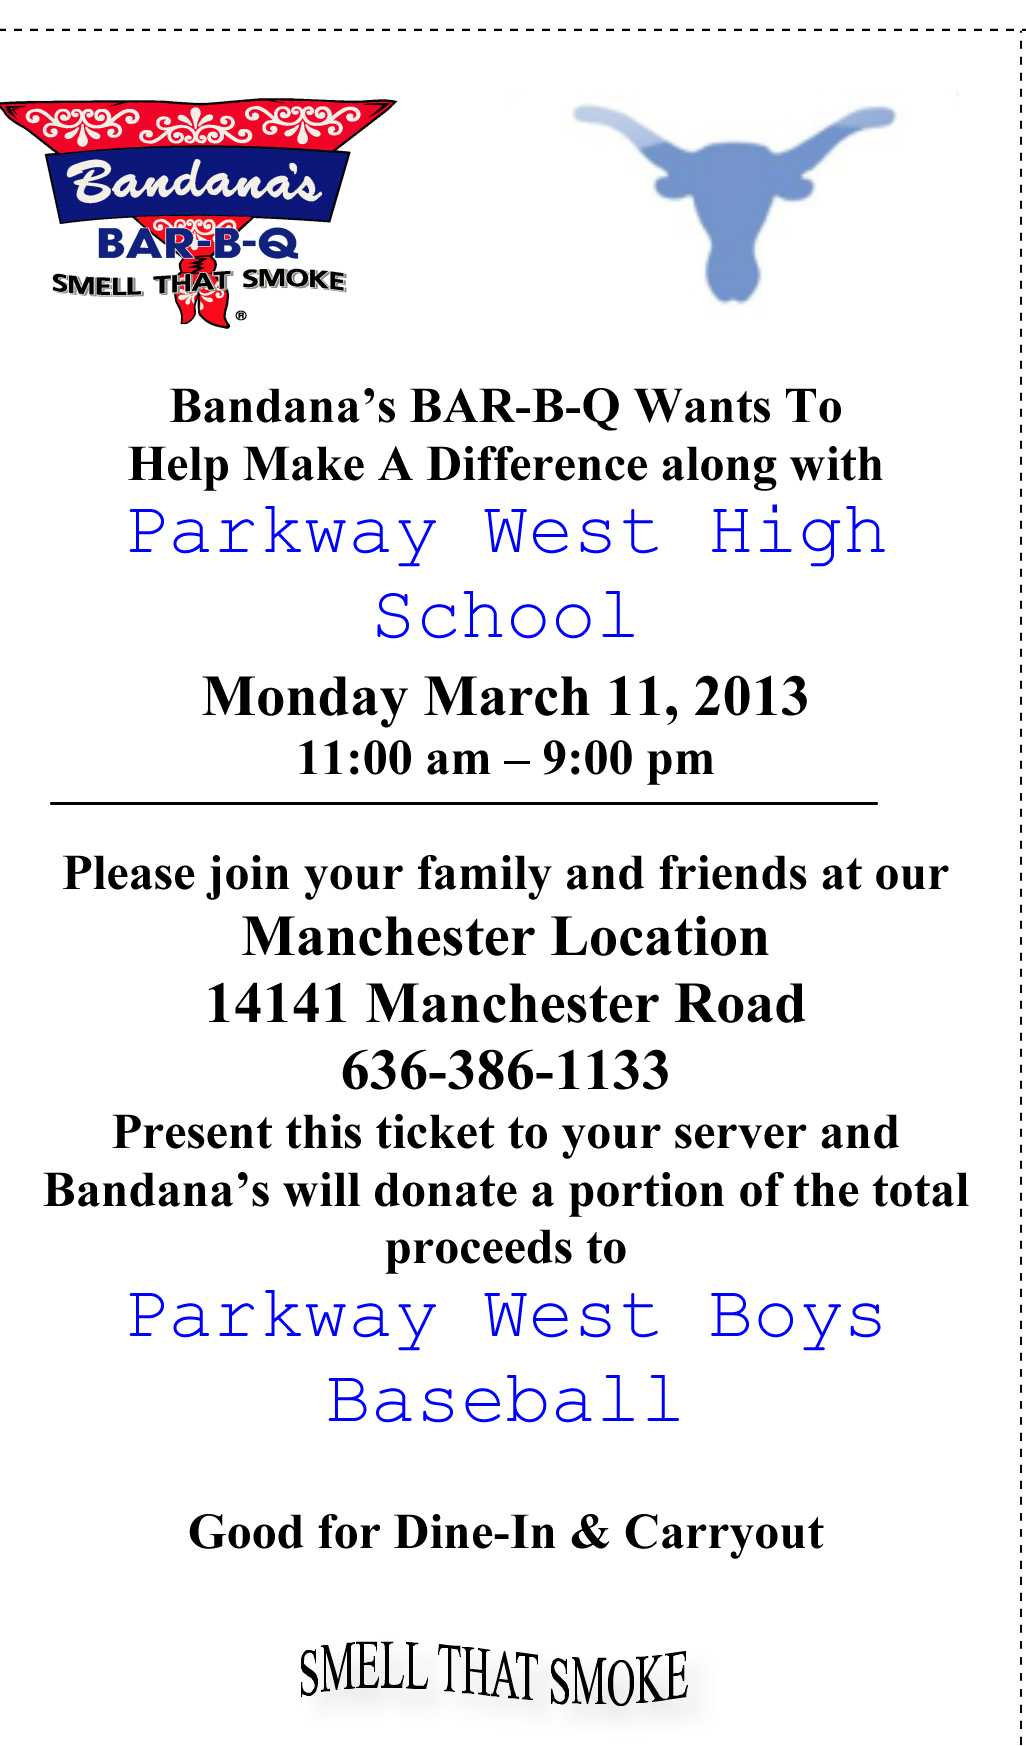 Join the Parkway West Baseball team at Bandana's Bar-B-Q Monday, March 11.